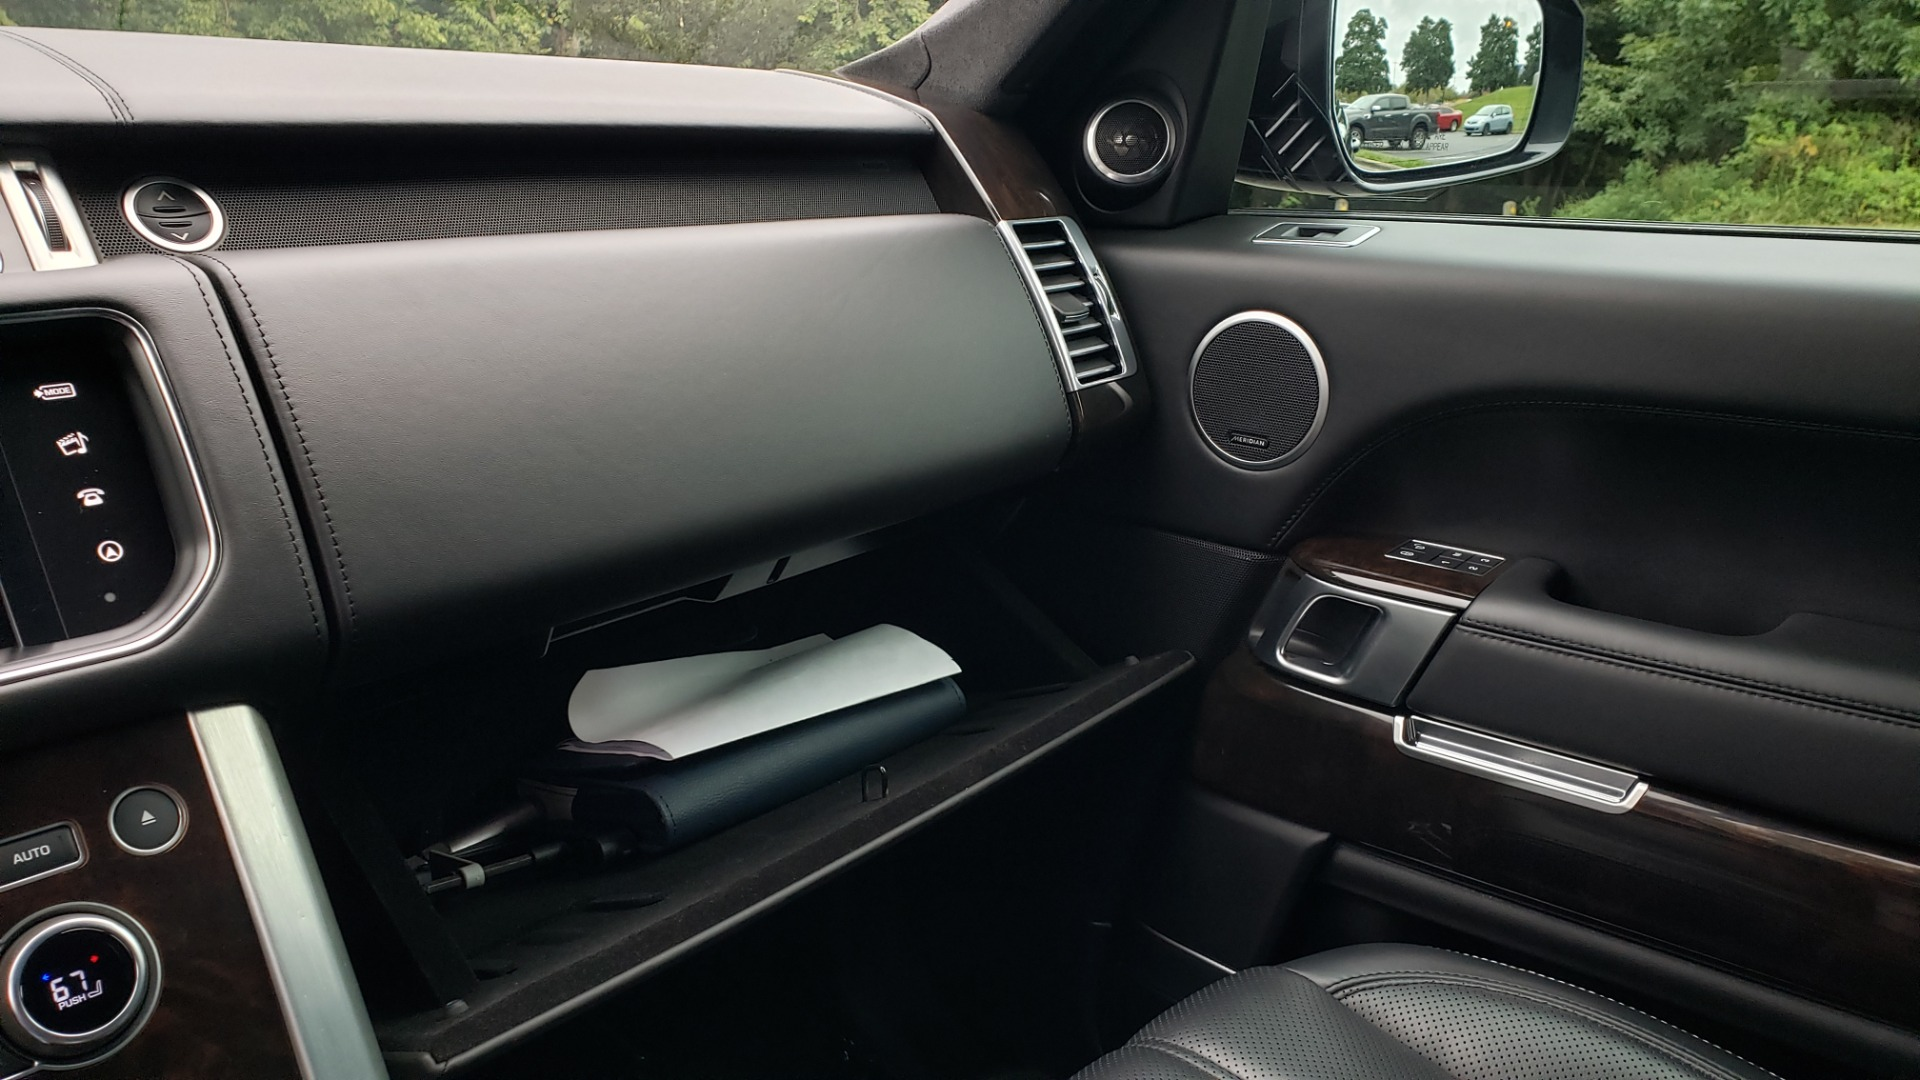 Used 2016 Land Rover RANGE ROVER AUTOBIOGRAPHY / SC-V8 / LWB / PANO-ROOF / NAV / MERIDIAN / ENT / REARVIEW for sale $71,495 at Formula Imports in Charlotte NC 28227 65